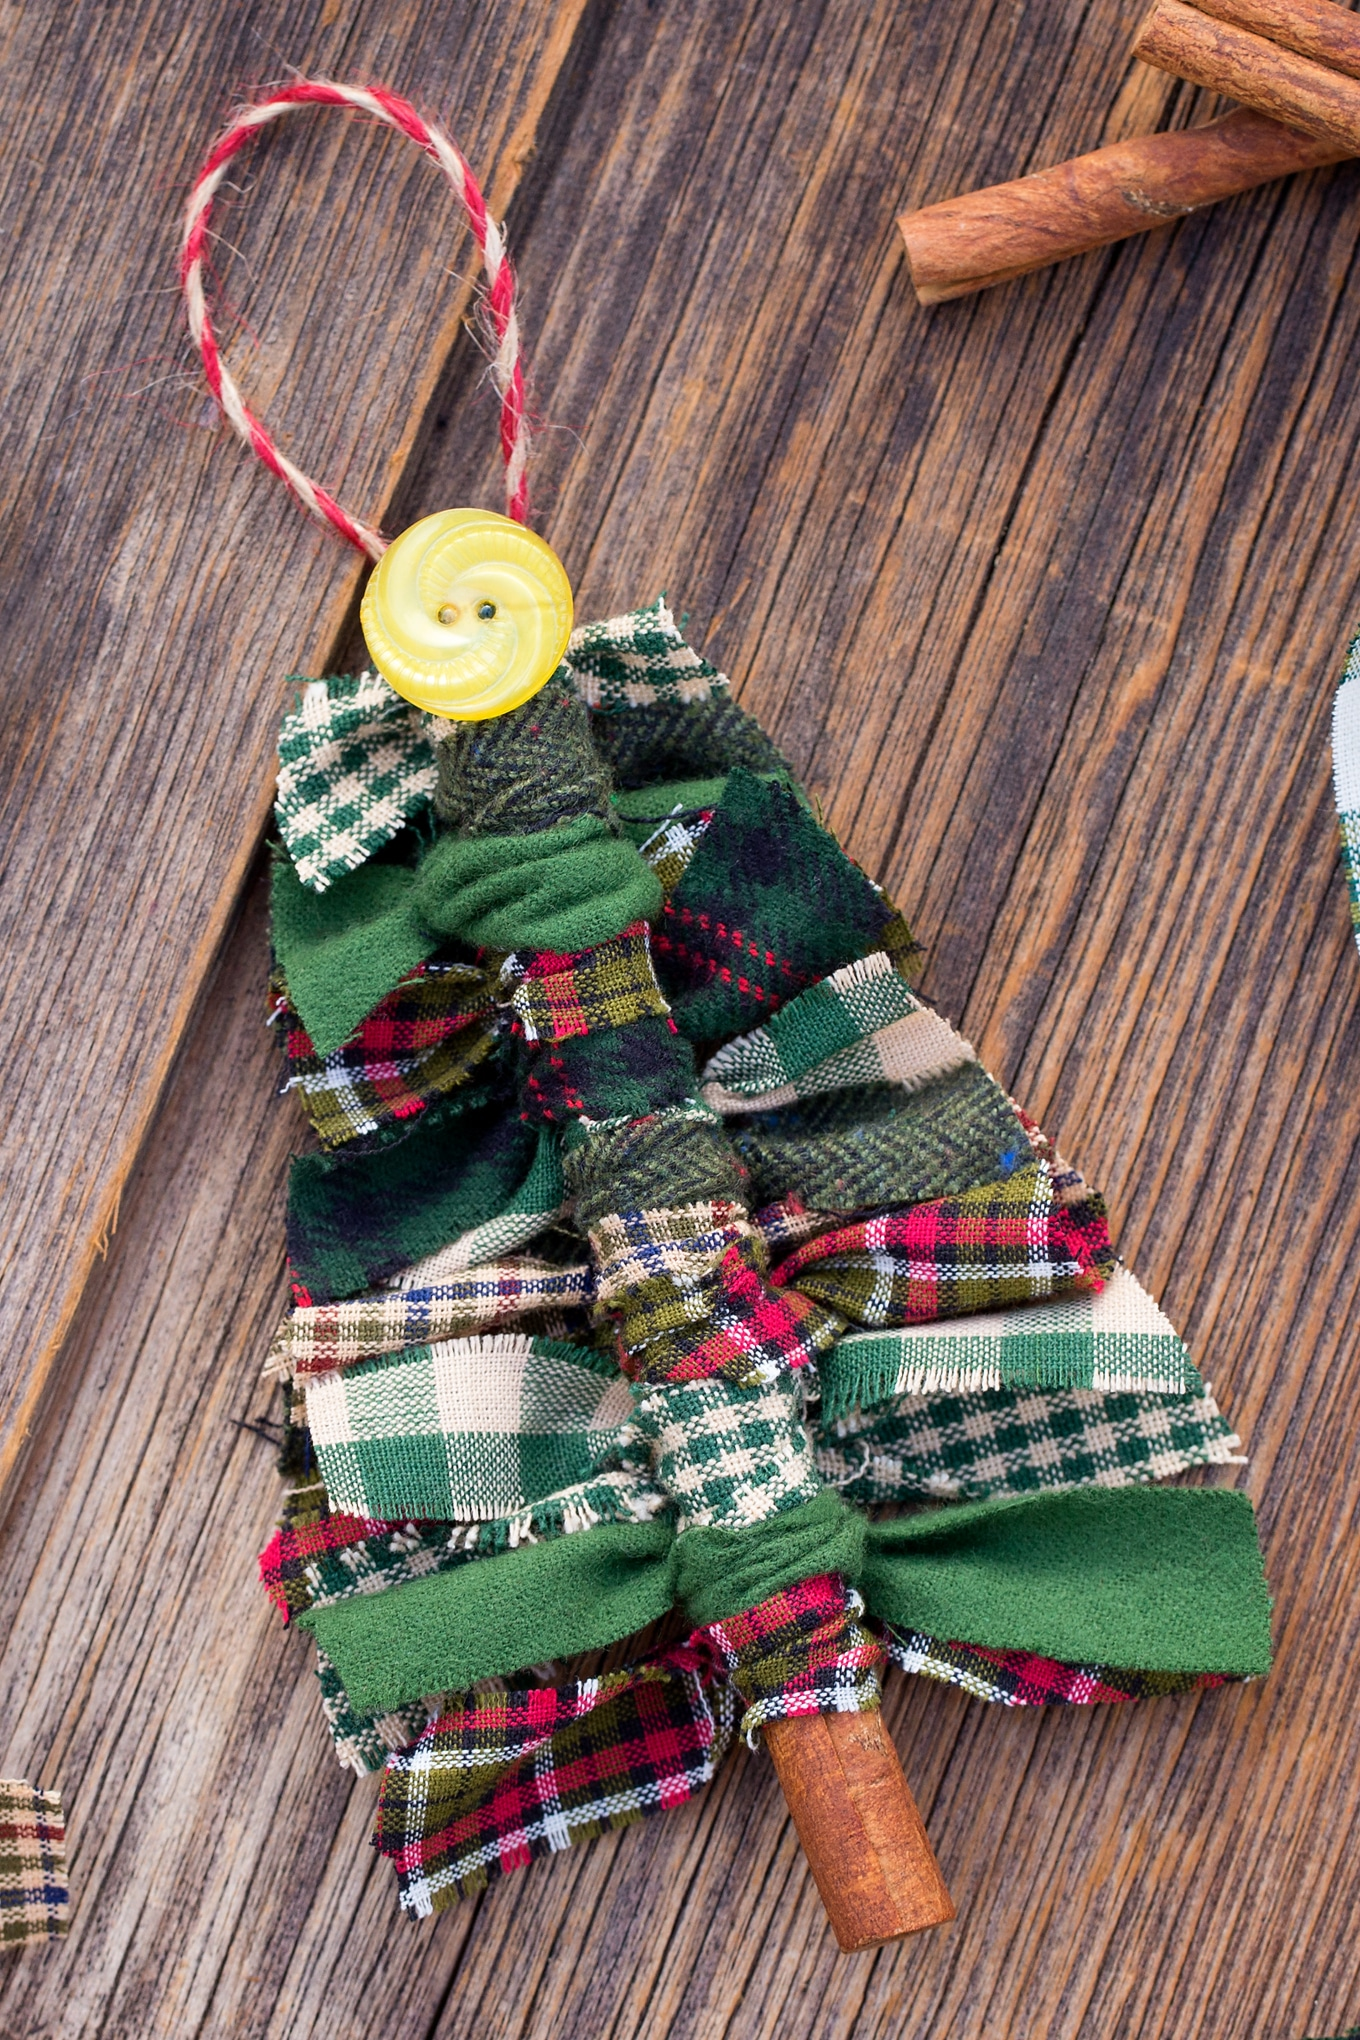 Learn how to Make Fabric Tree Ornaments for Christmas